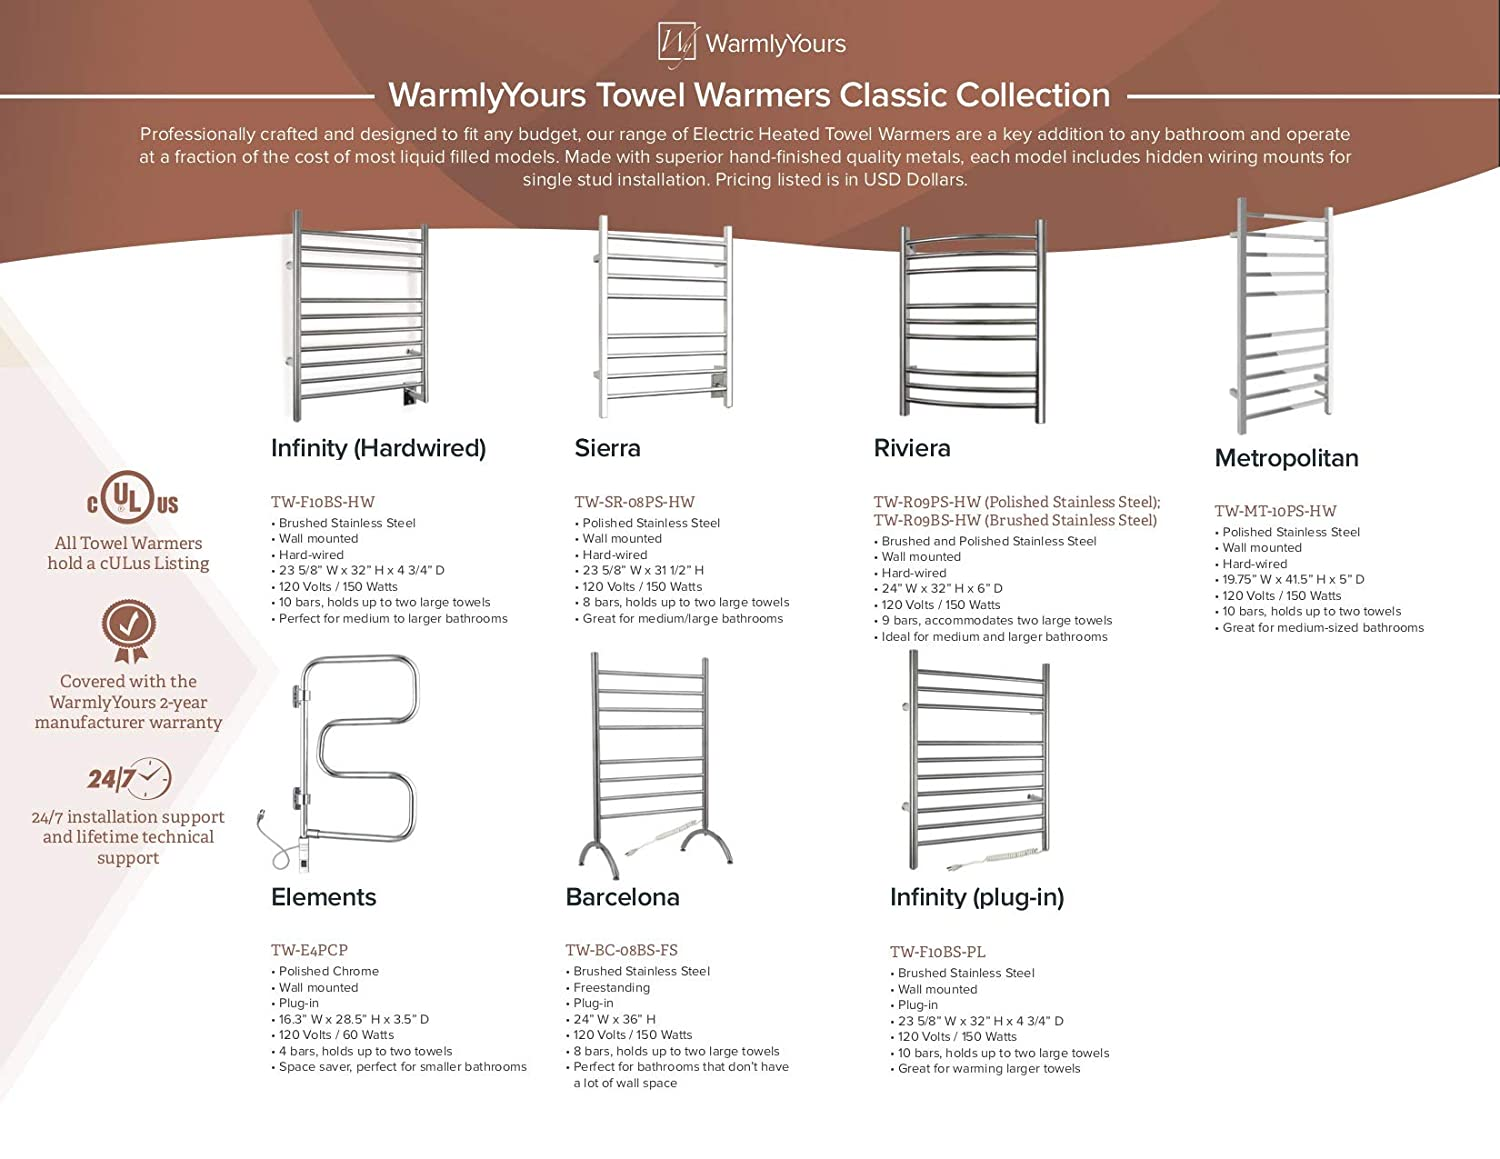 Warmlyyours 9 Bar Riviera Towel Warmer Hardwired Wiring Diagram Polished Stainless Steel Home Kitchen